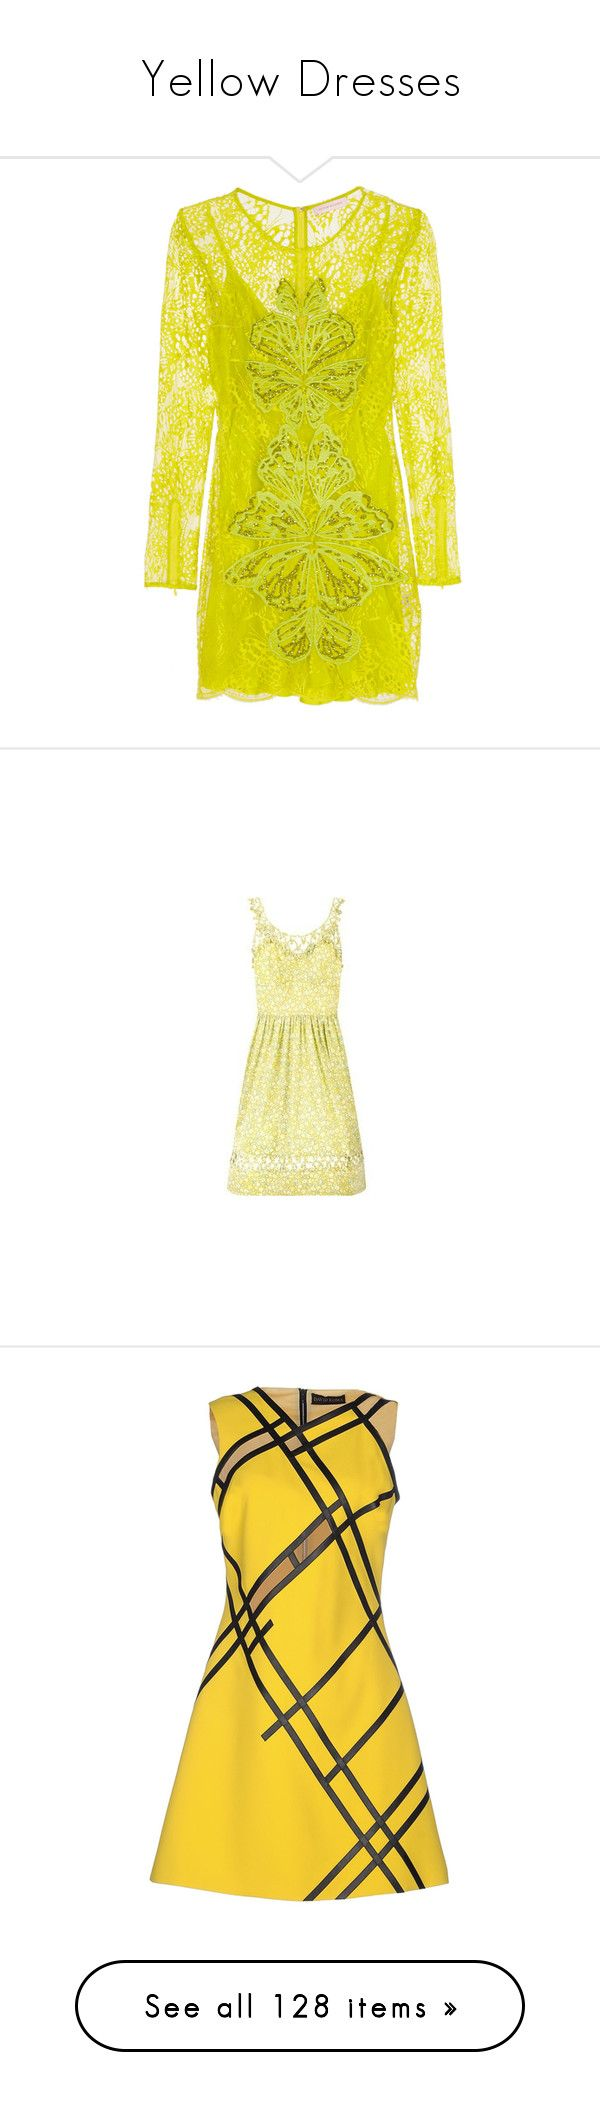 """Yellow Dresses"" by cattyrose ❤ liked on Polyvore featuring dresses, matthew williamson, long-sleeve mini dress, long-sleeve lace dresses, long sleeve dresses, yellow mini dress, long sleeve short dress, floral day dress, floral design dresses and anna sui"